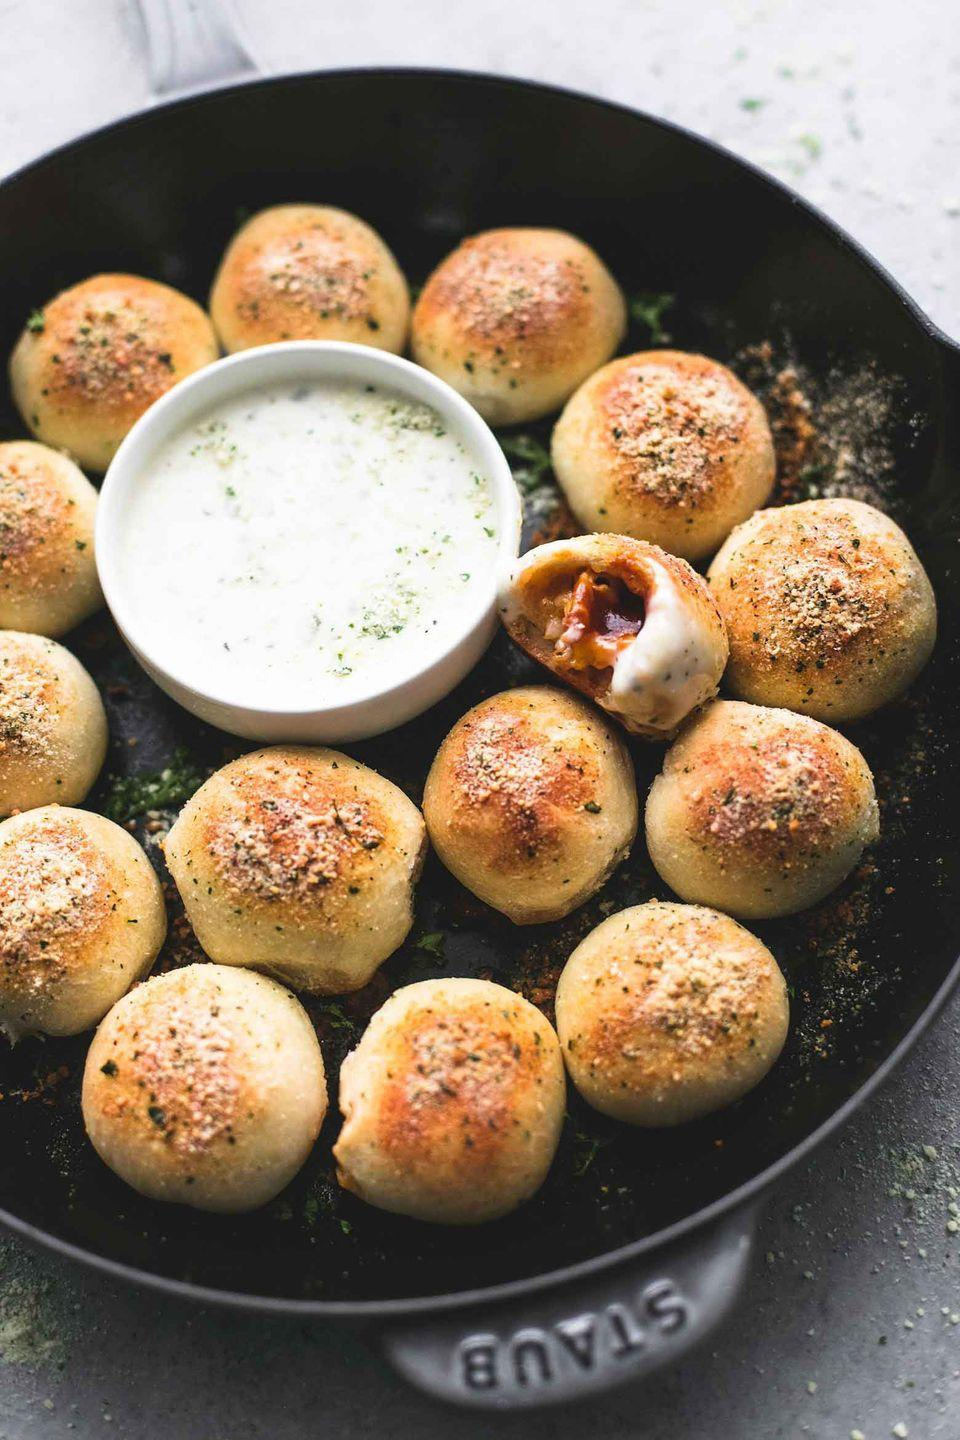 "<p>For the perfect game day finger food, look to these dough balls filled with BBQ chicken and dipped in creamy ranch.</p><p><strong>Get the recipe at <a href=""https://www.lecremedelacrumb.com/bbq-chicken-bites/"" rel=""nofollow noopener"" target=""_blank"" data-ylk=""slk:Creme de la Crumb"" class=""link rapid-noclick-resp"">Creme de la Crumb</a>.</strong></p><p><a class=""link rapid-noclick-resp"" href=""https://www.amazon.com/Red-Star-Active-Yeast-pound/dp/B003EE0CHA/?tag=syn-yahoo-20&ascsubtag=%5Bartid%7C10050.g.2966%5Bsrc%7Cyahoo-us"" rel=""nofollow noopener"" target=""_blank"" data-ylk=""slk:SHOP DRY YEAST"">SHOP DRY YEAST</a></p>"